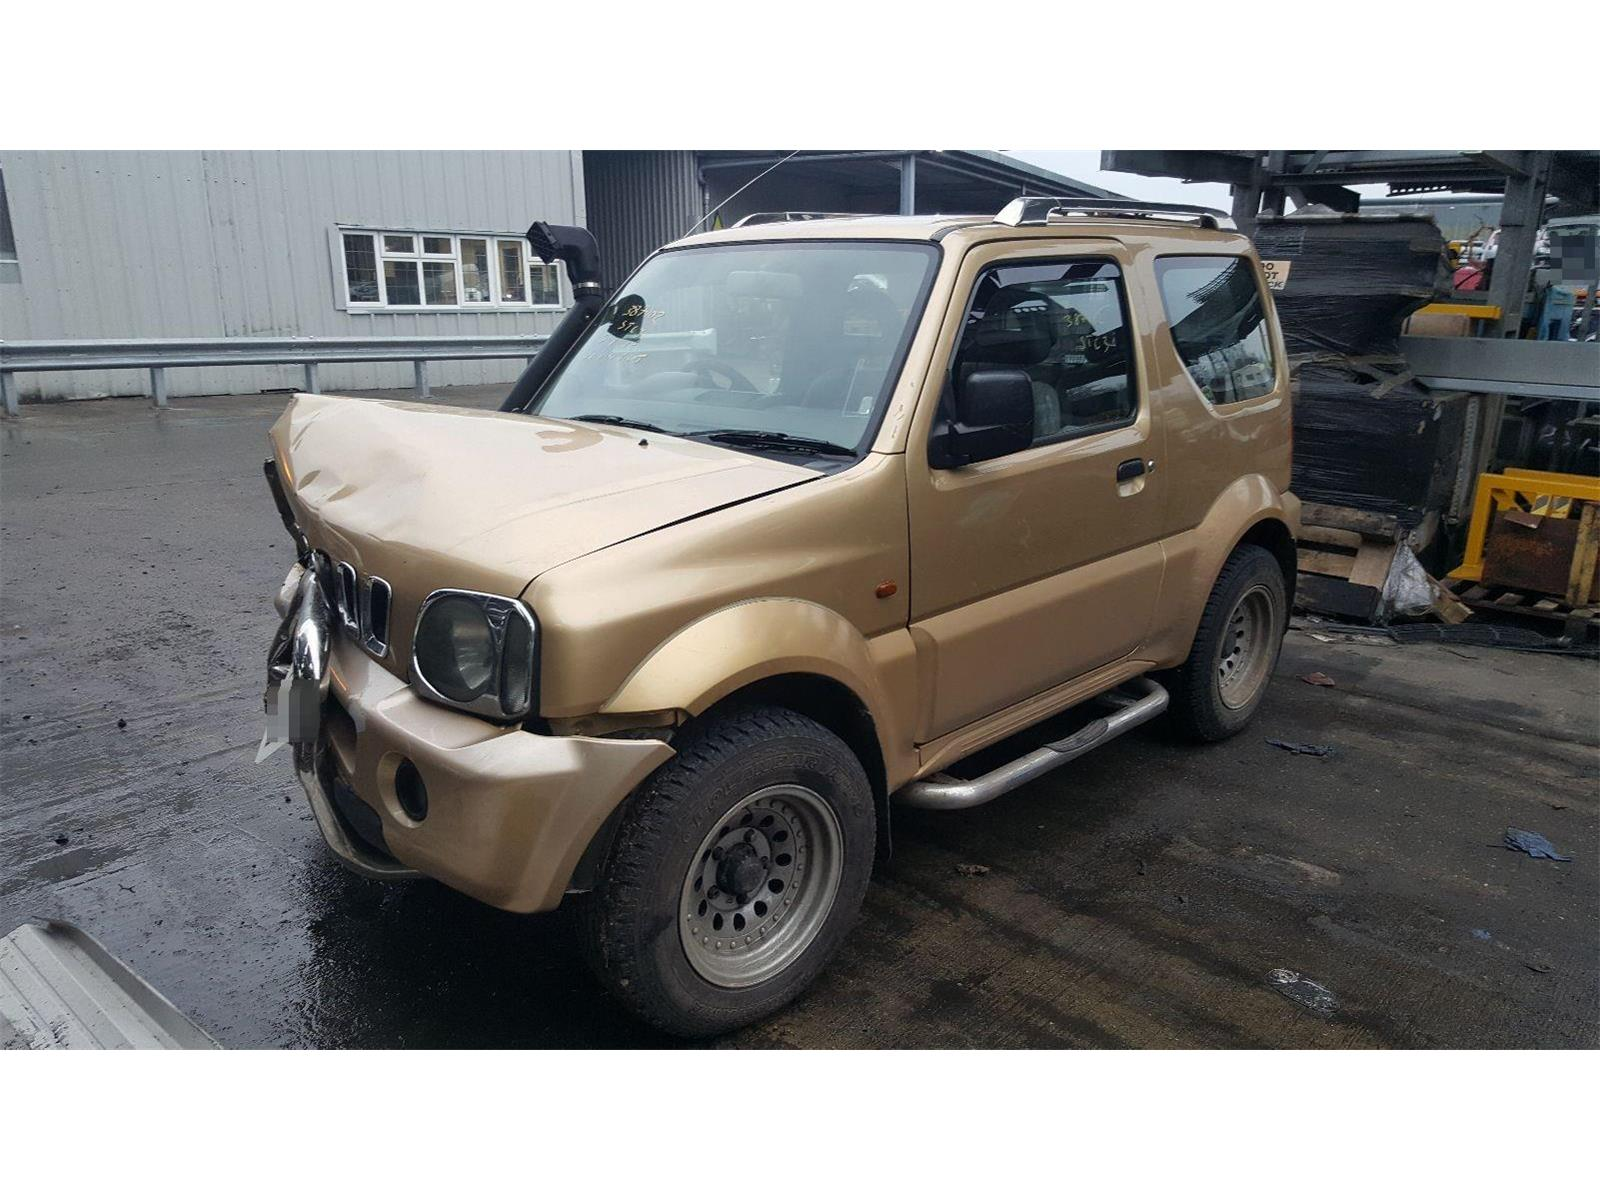 Suzuki Jimny 1999 Fuse Box Manual Of Wiring Diagram Vitara 1998 On Jlx 1 3cc Petrol Gold Car Rh Silverlake Co Uk Grand